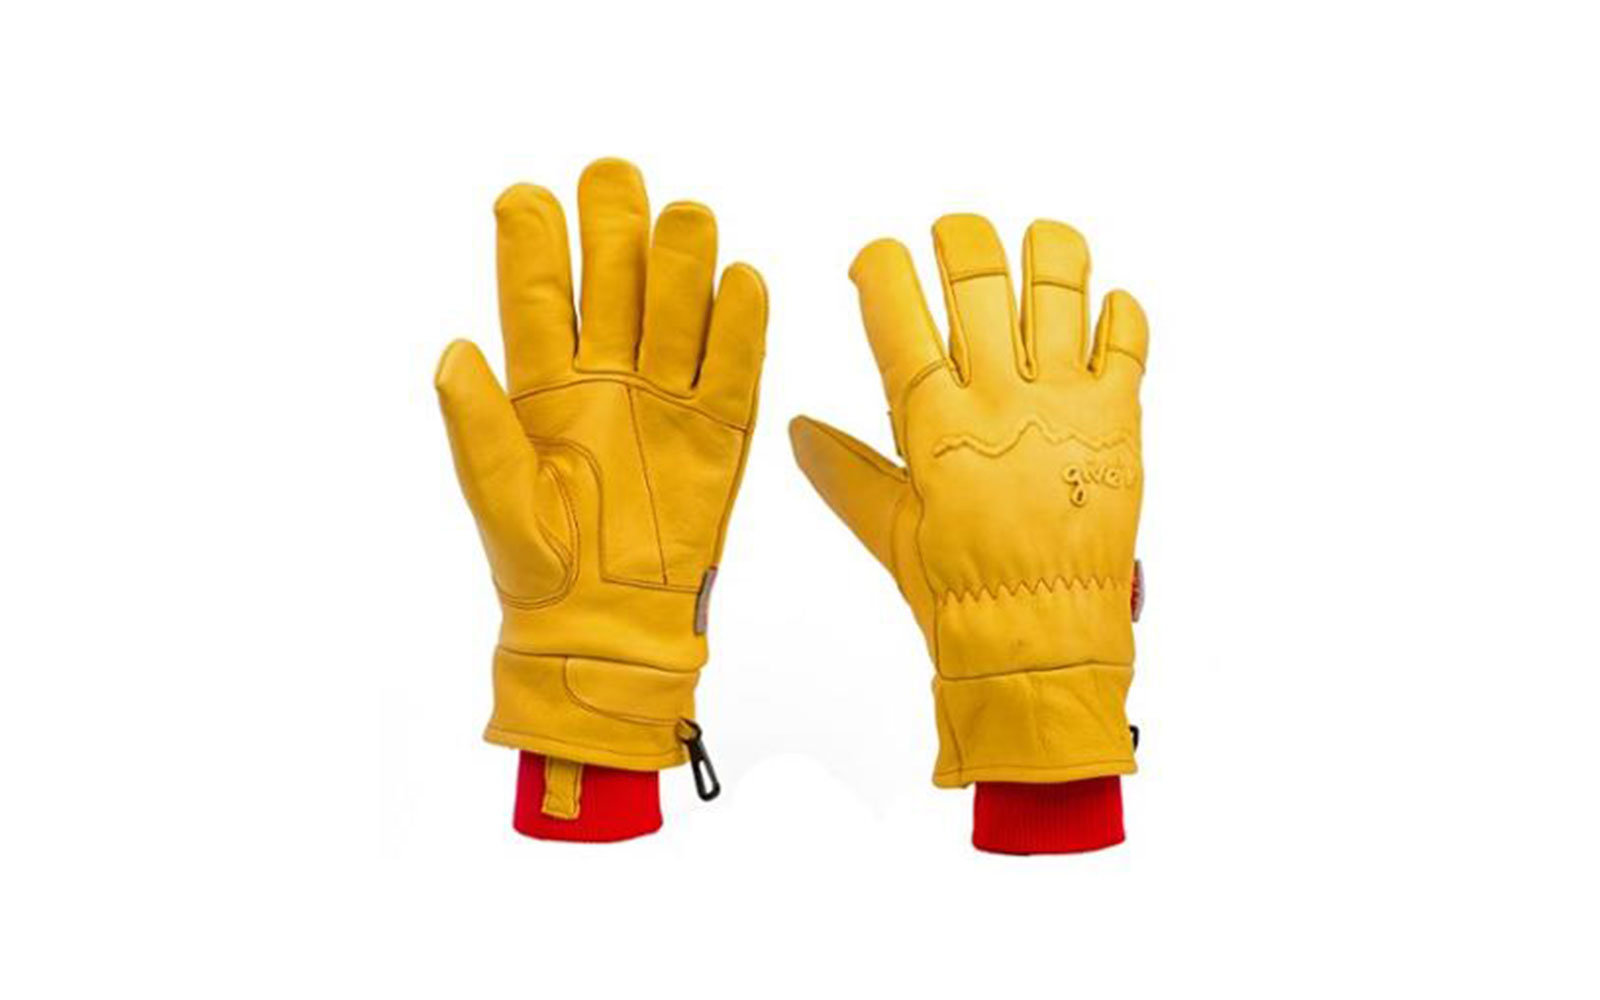 Give'r 4 Seasons winter gloves